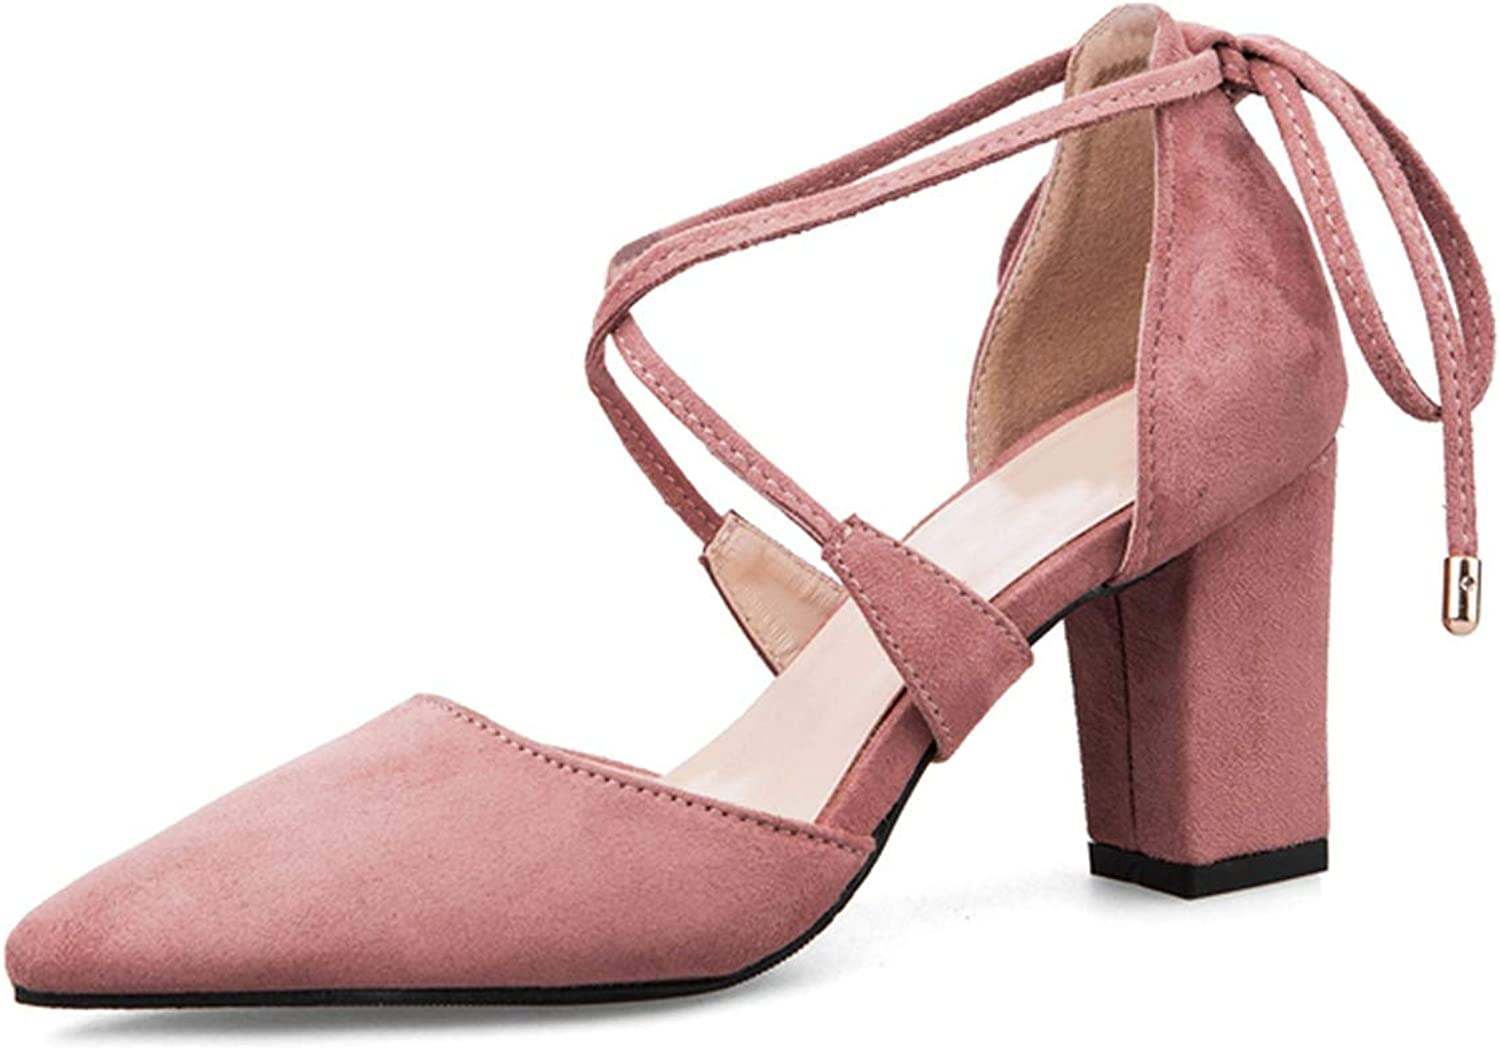 Sexy High Heels Women's shoes Sandals Suede Leather Pointed Toe Heels Women Party shoes,Pink,36